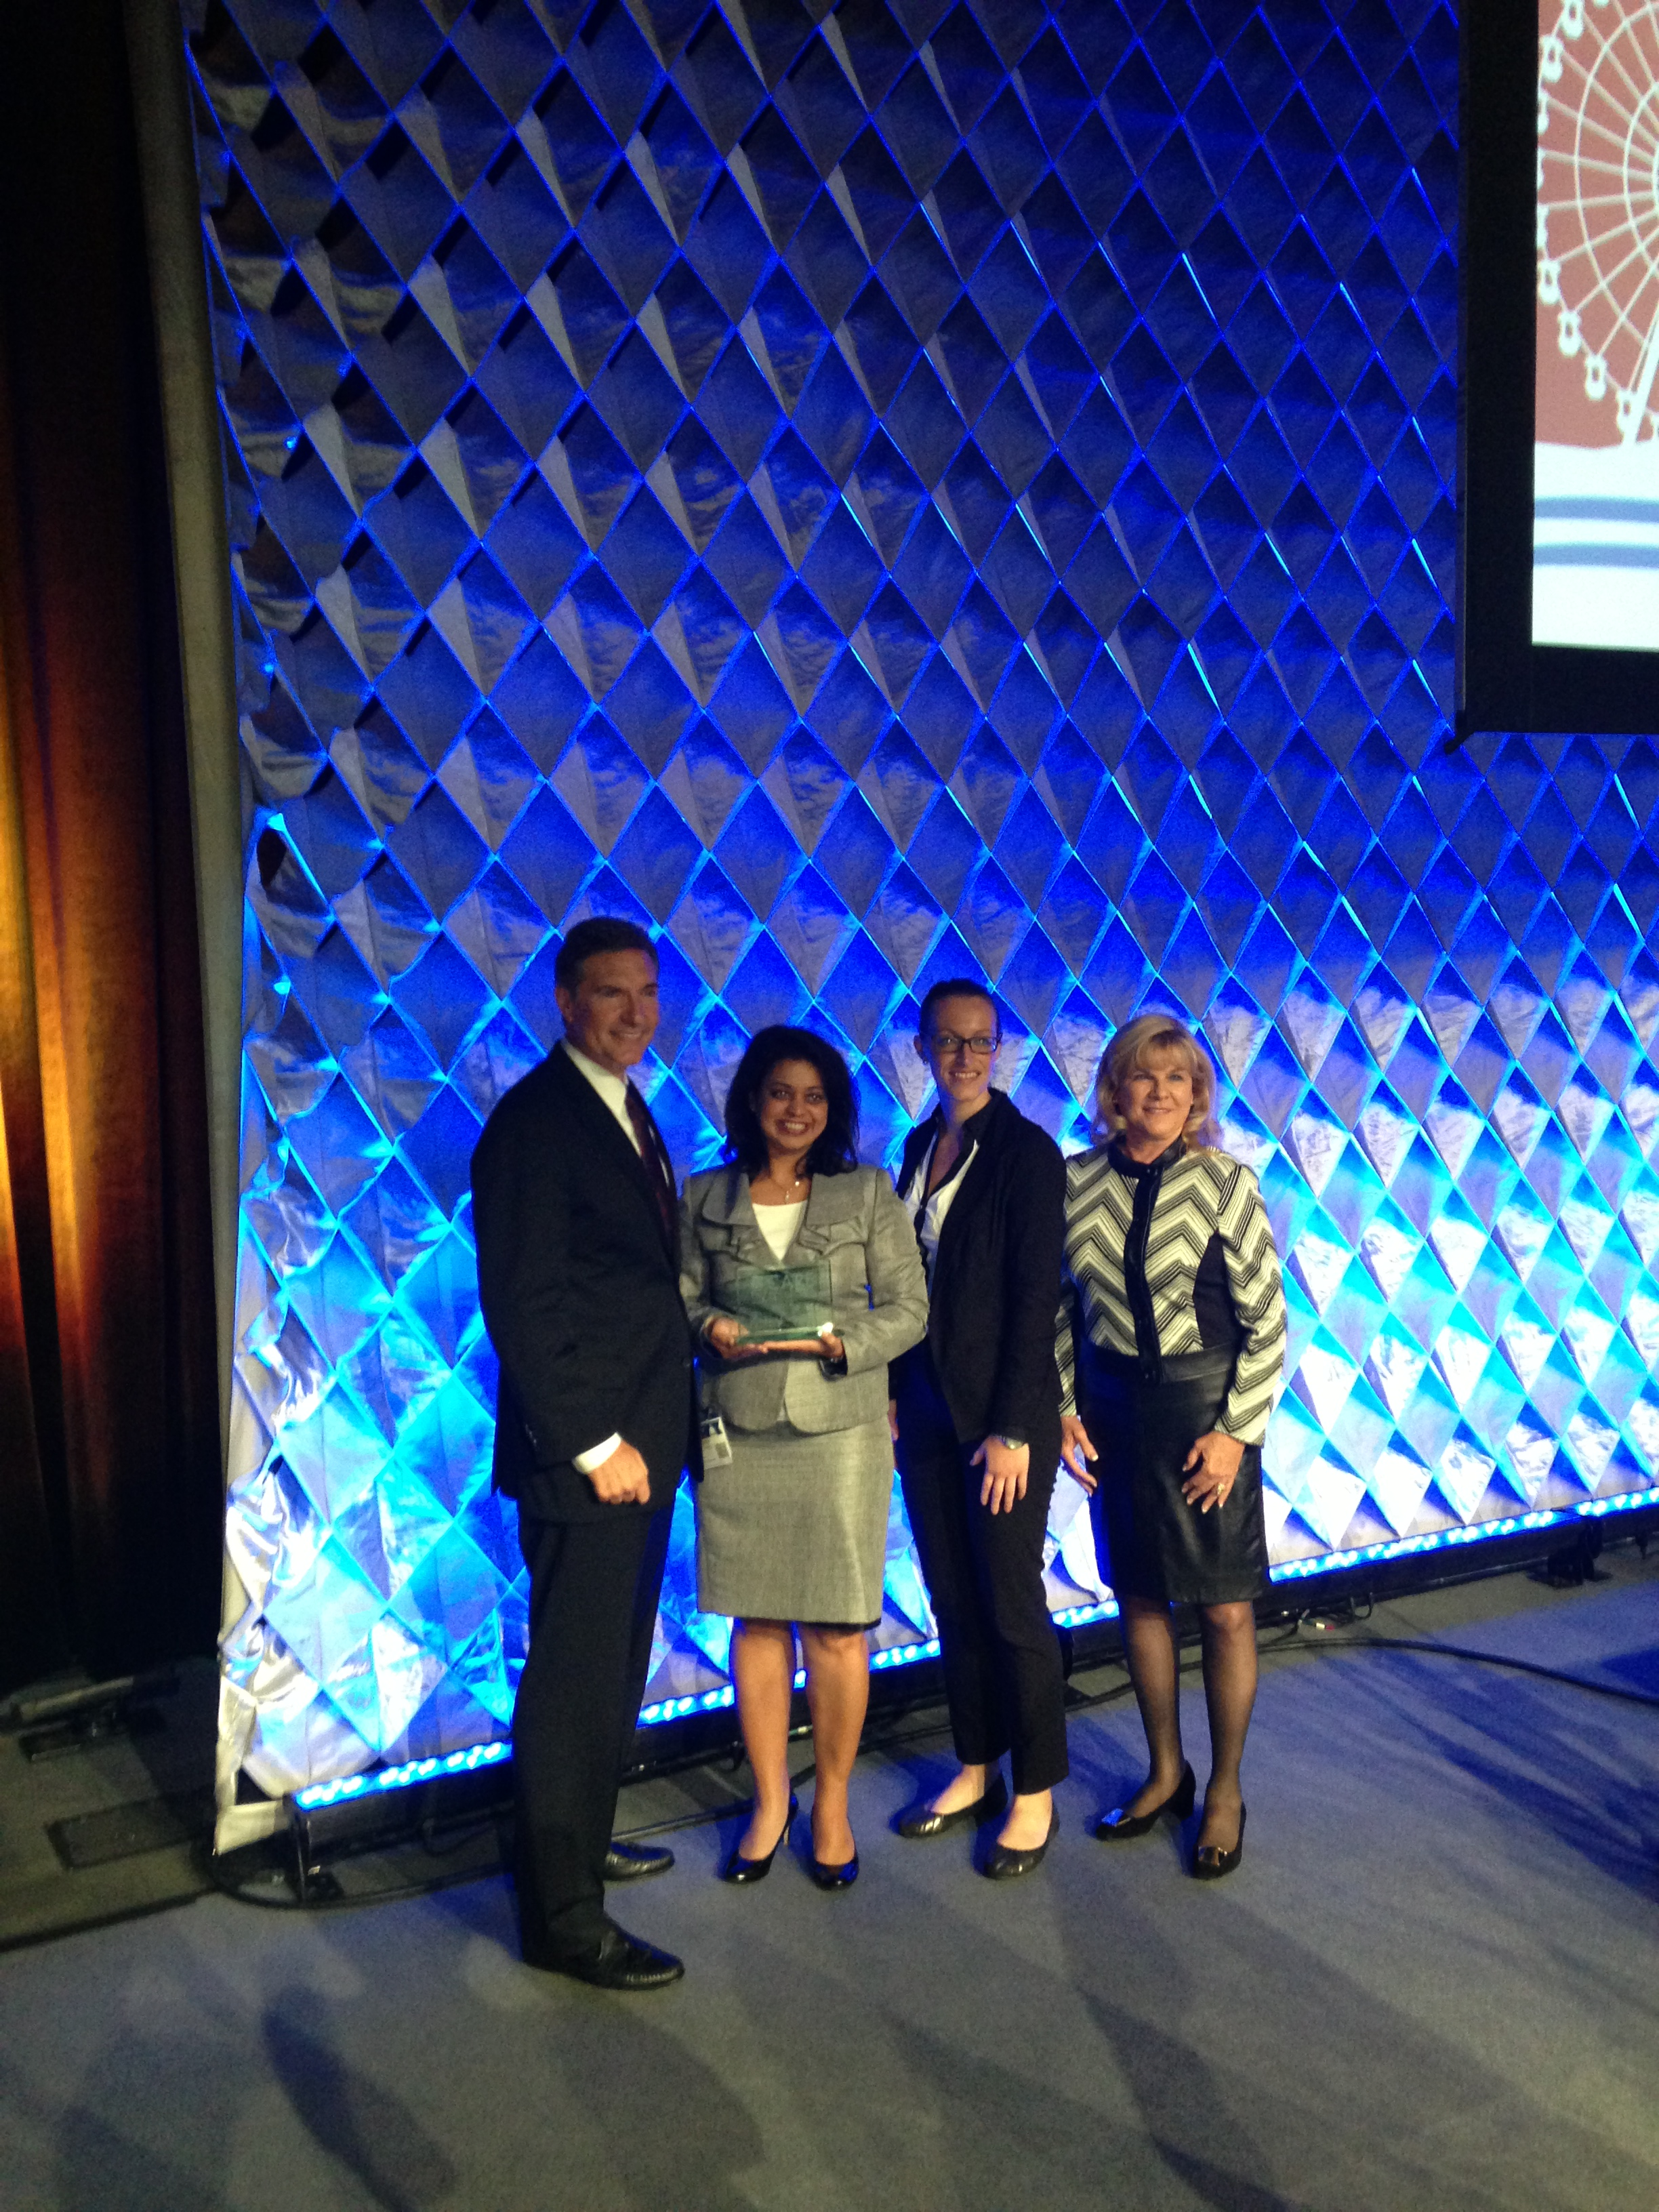 Rangam Consultants Inc Wins Care Awards From American